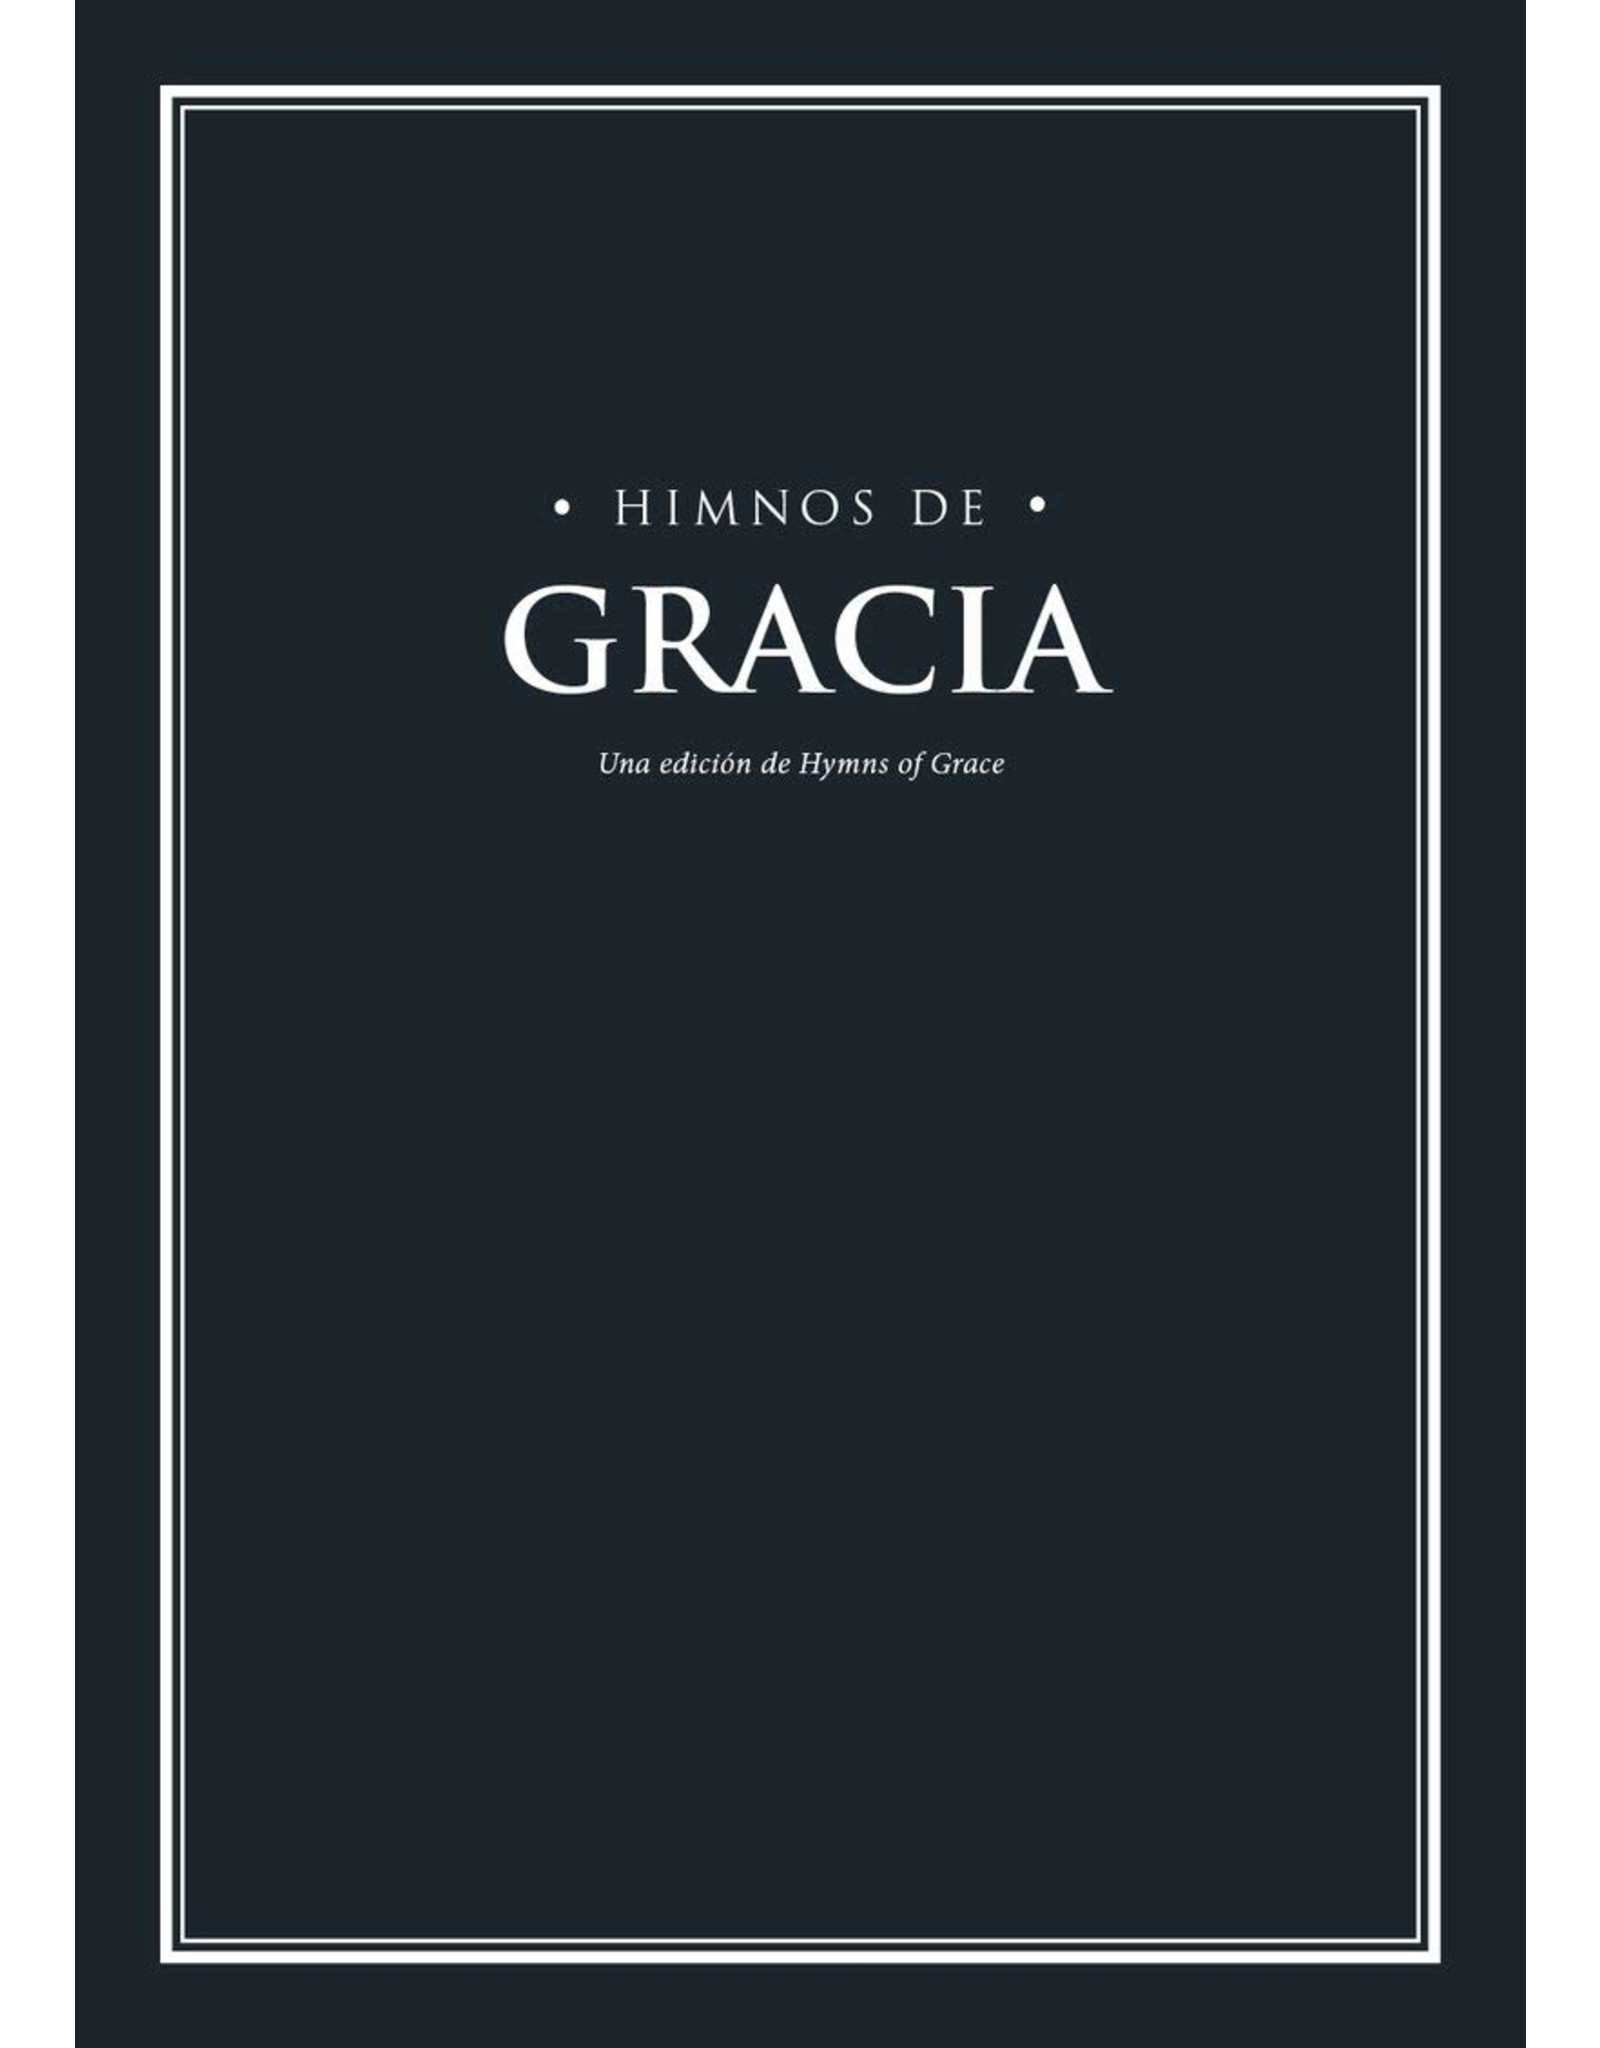 Poiema Himnos De Gracia (Hymns of Grace - Spanish)